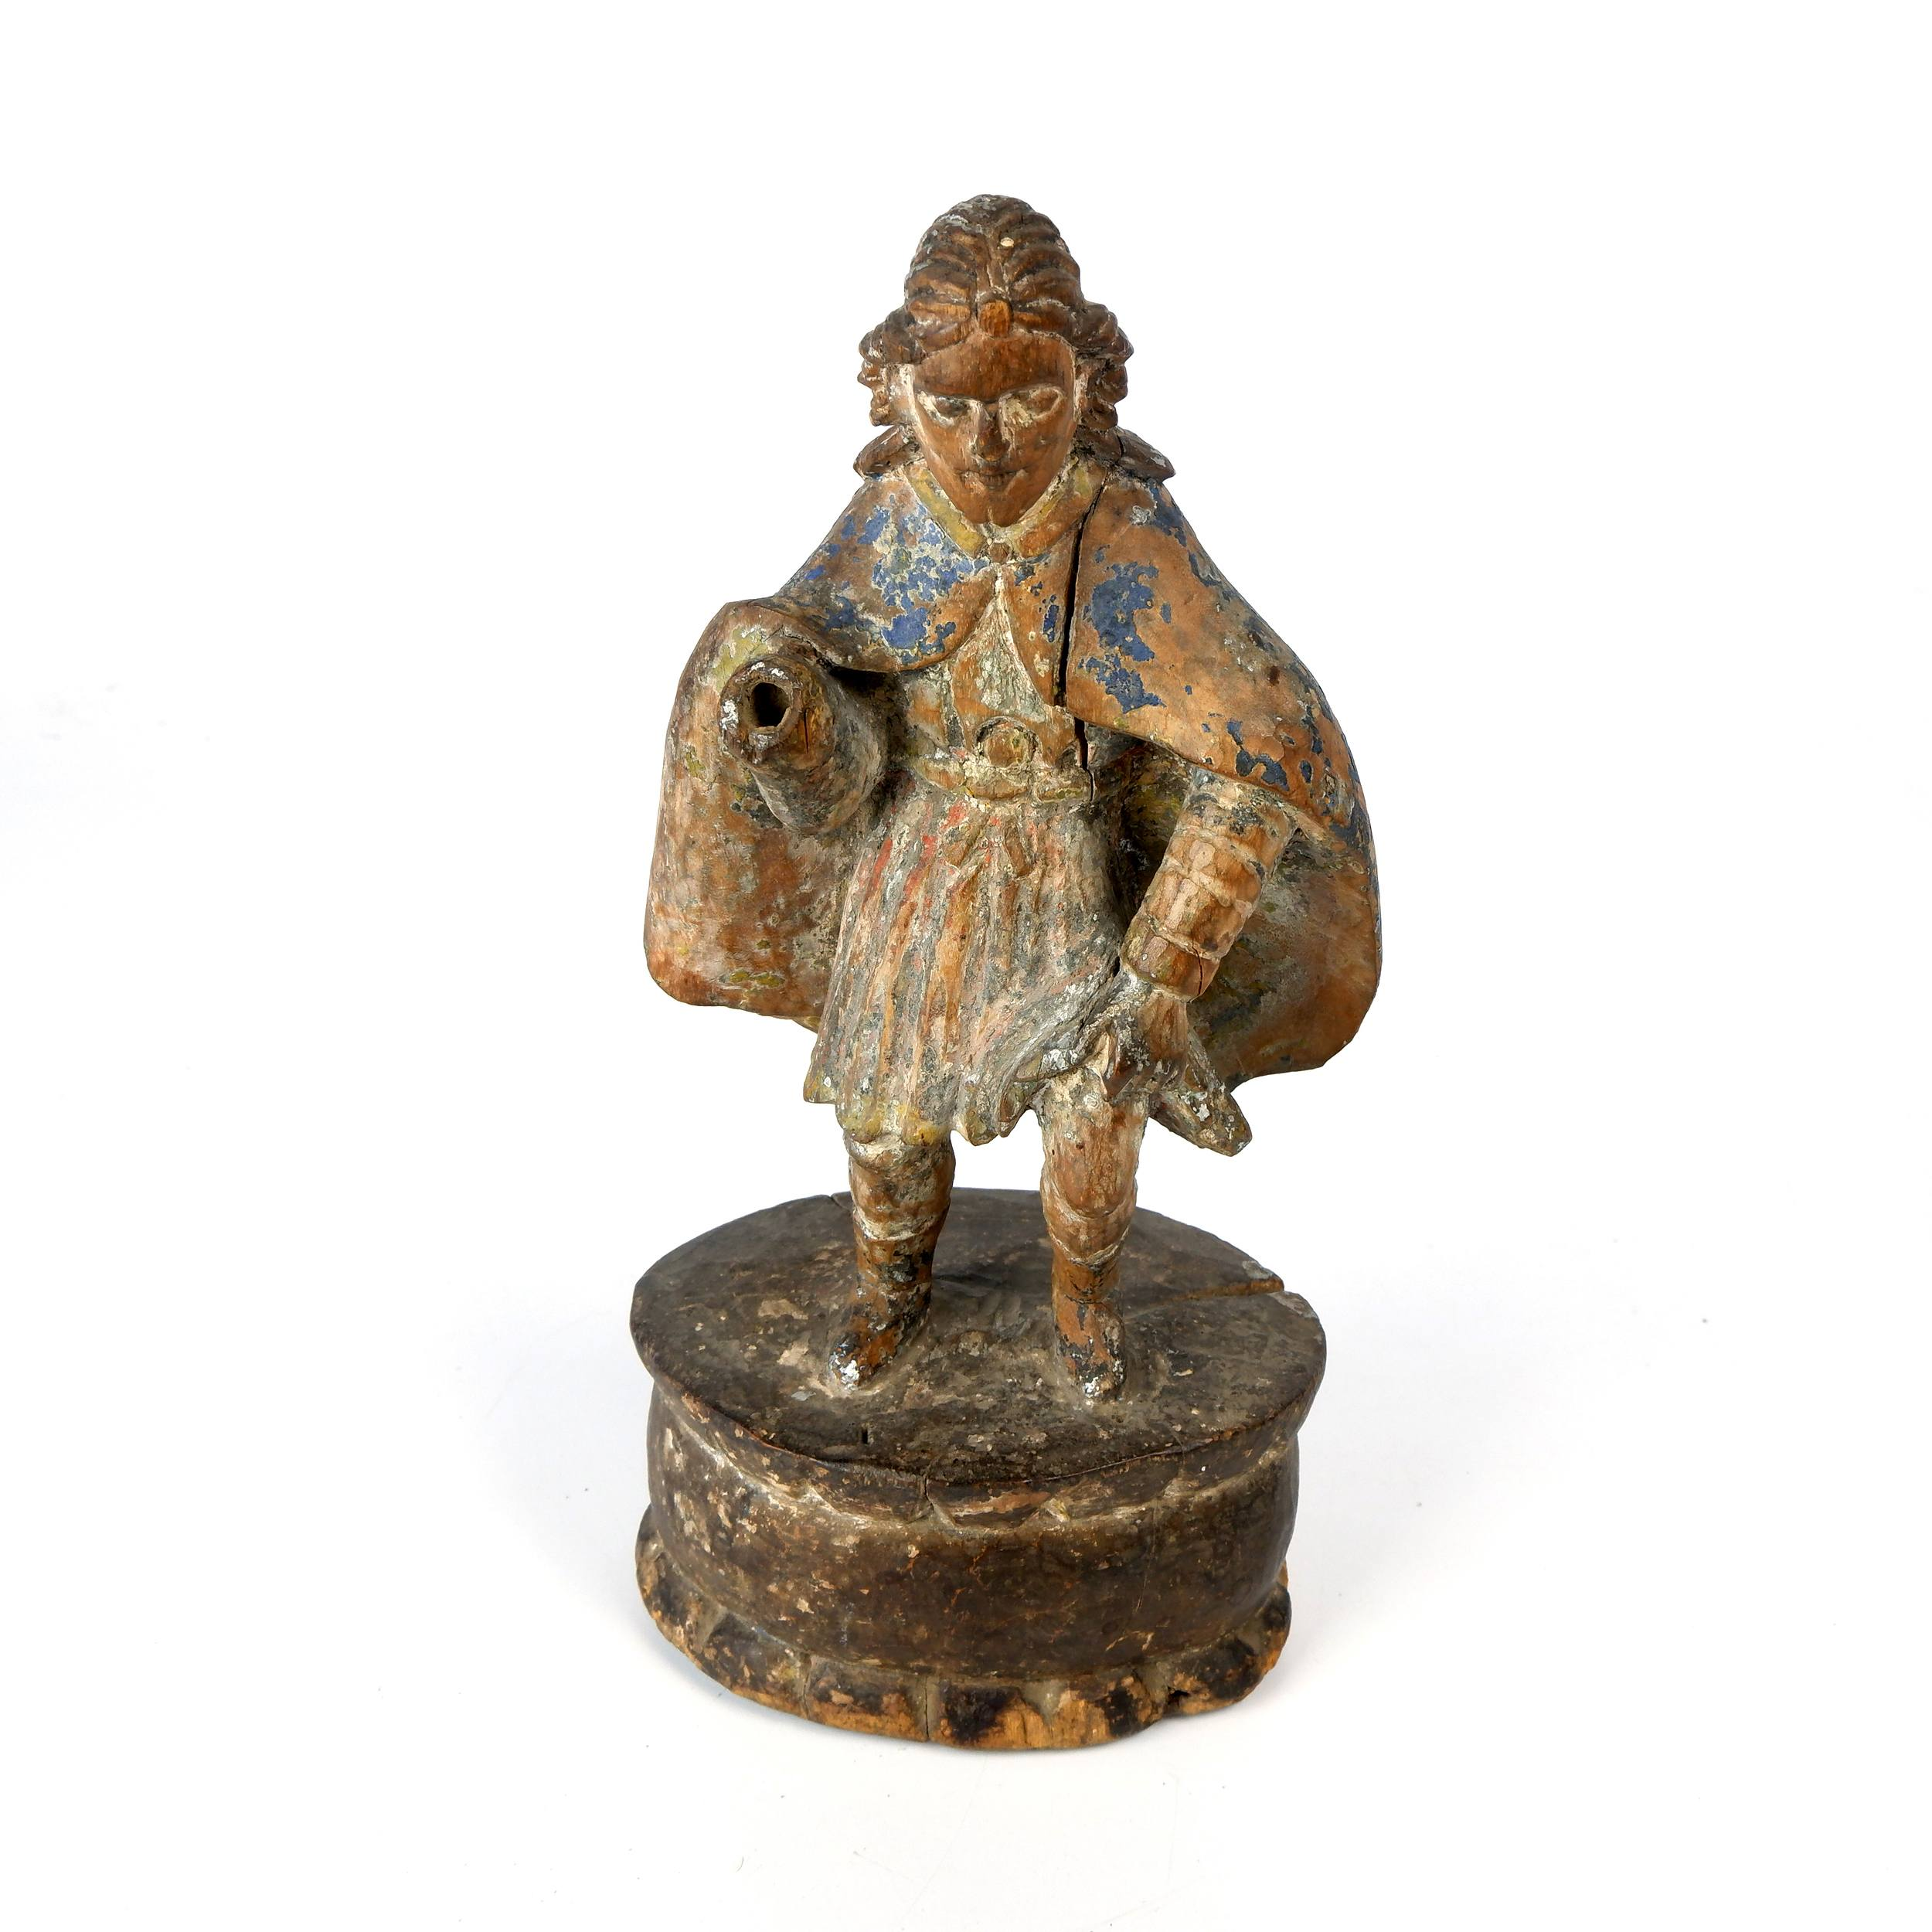 'Antique Philippino Hand Carved and Painted Santos Figure of Saint Roch Pointing to a Lesion on his Thigh, Late 19th to Early 20th Century'